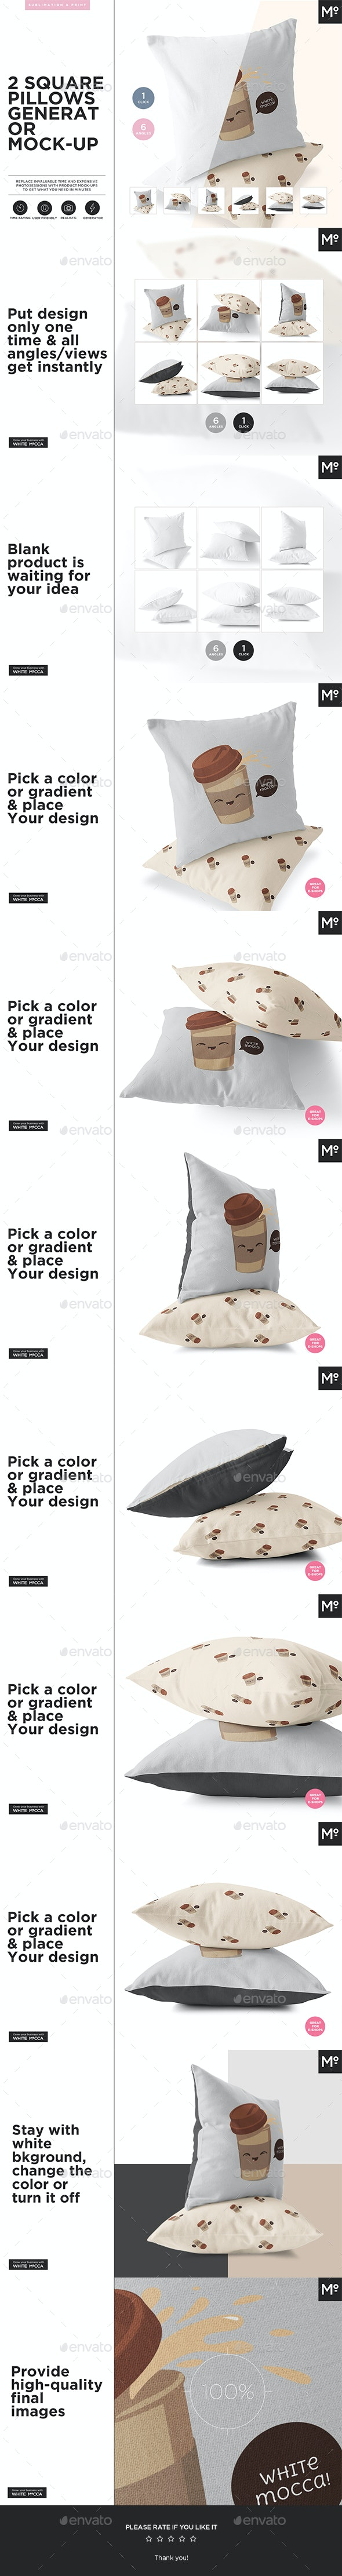 2 Square Pillows Generator Mock-up - Miscellaneous Print